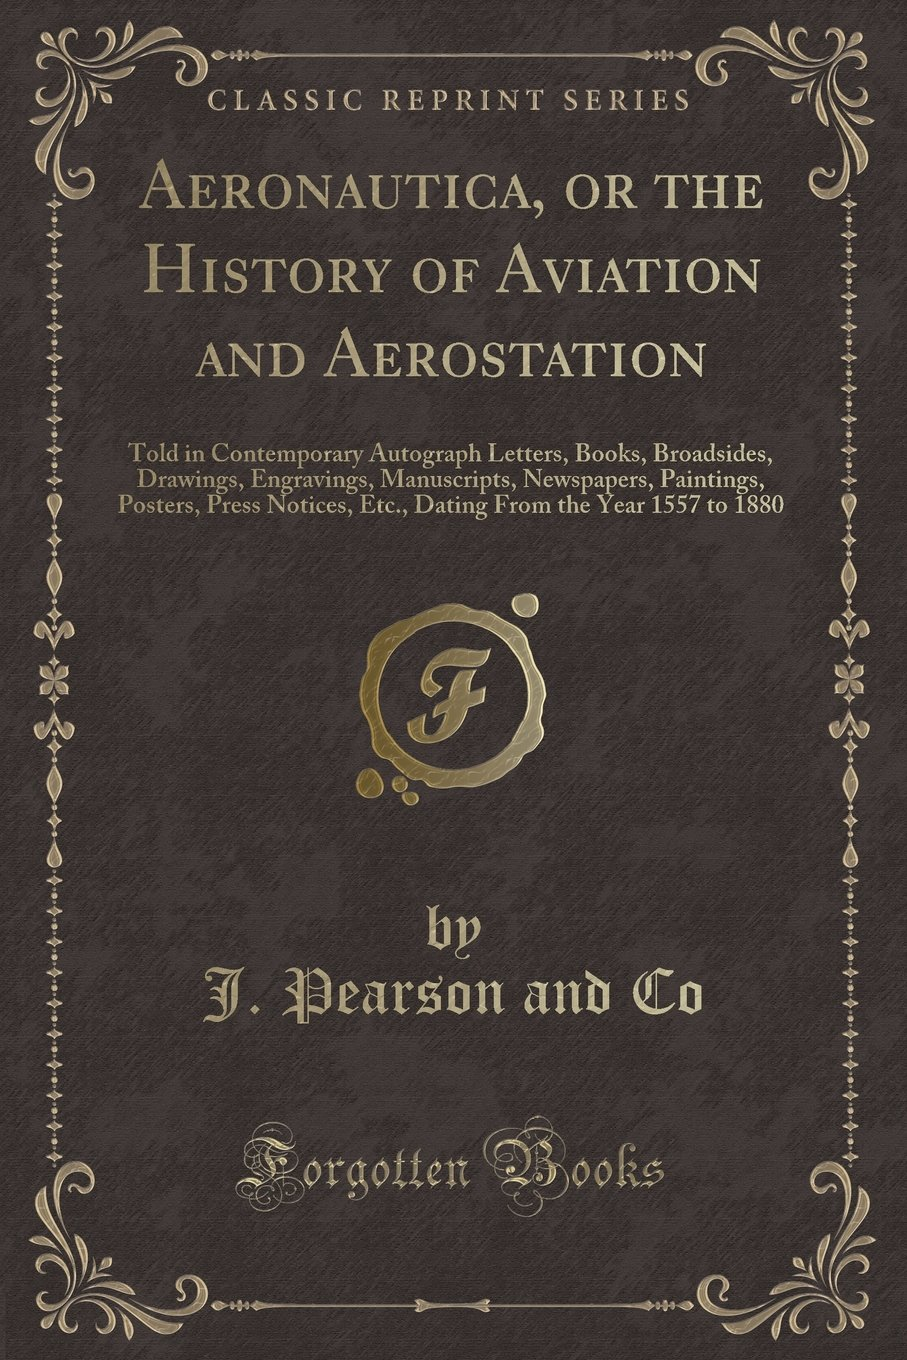 Aeronautica, or the History of Aviation and Aerostation: Told in Contemporary Autograph Letters, Books, Broadsides, Drawings, Engravings, Manuscripts, ... Etc., Dating From the Year 1557 to 1880 PDF